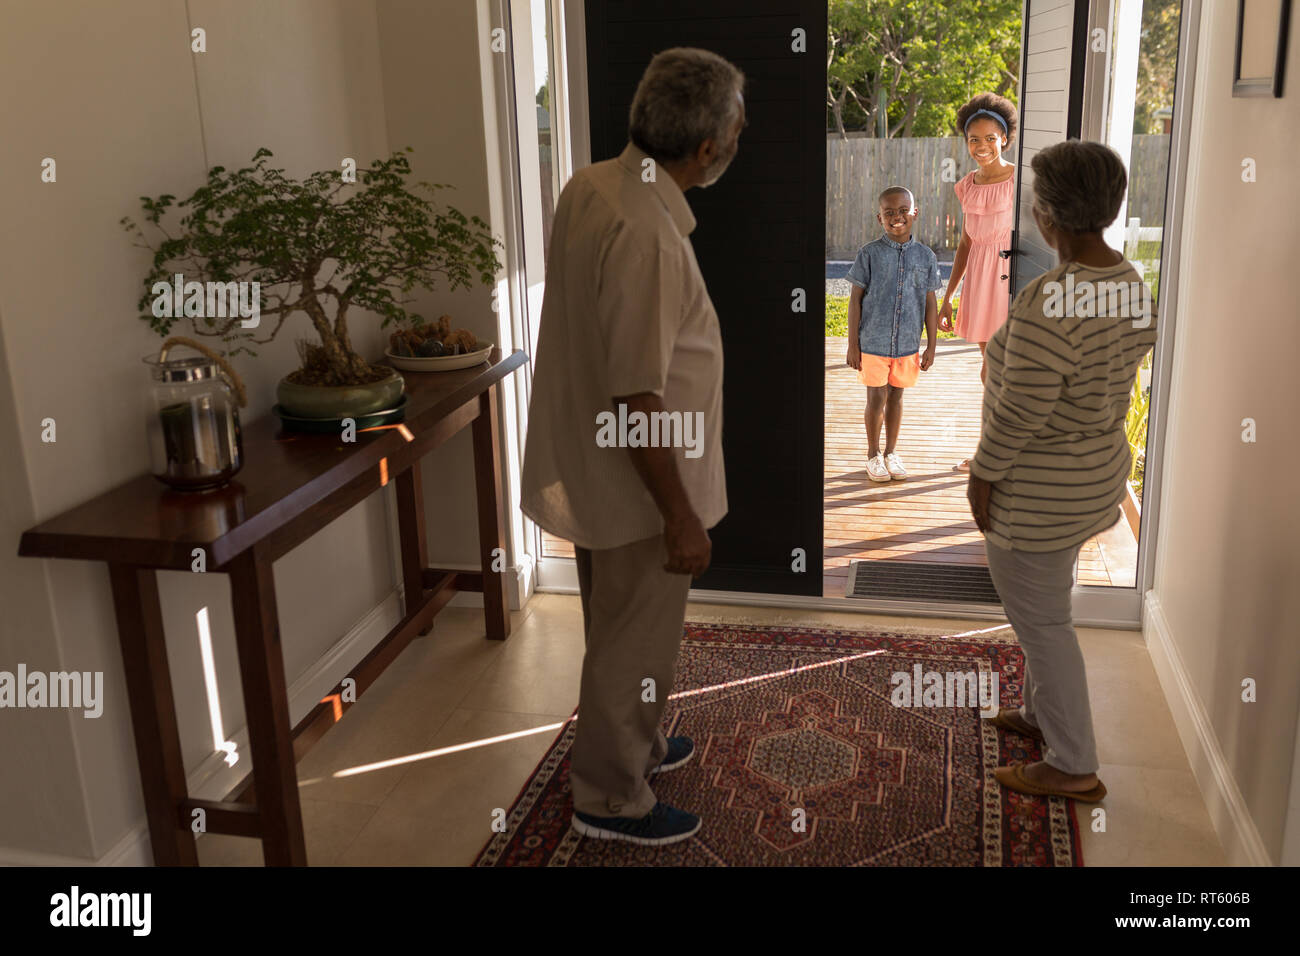 Grandparents standing near door and inviting their grandchildren in home - Stock Image